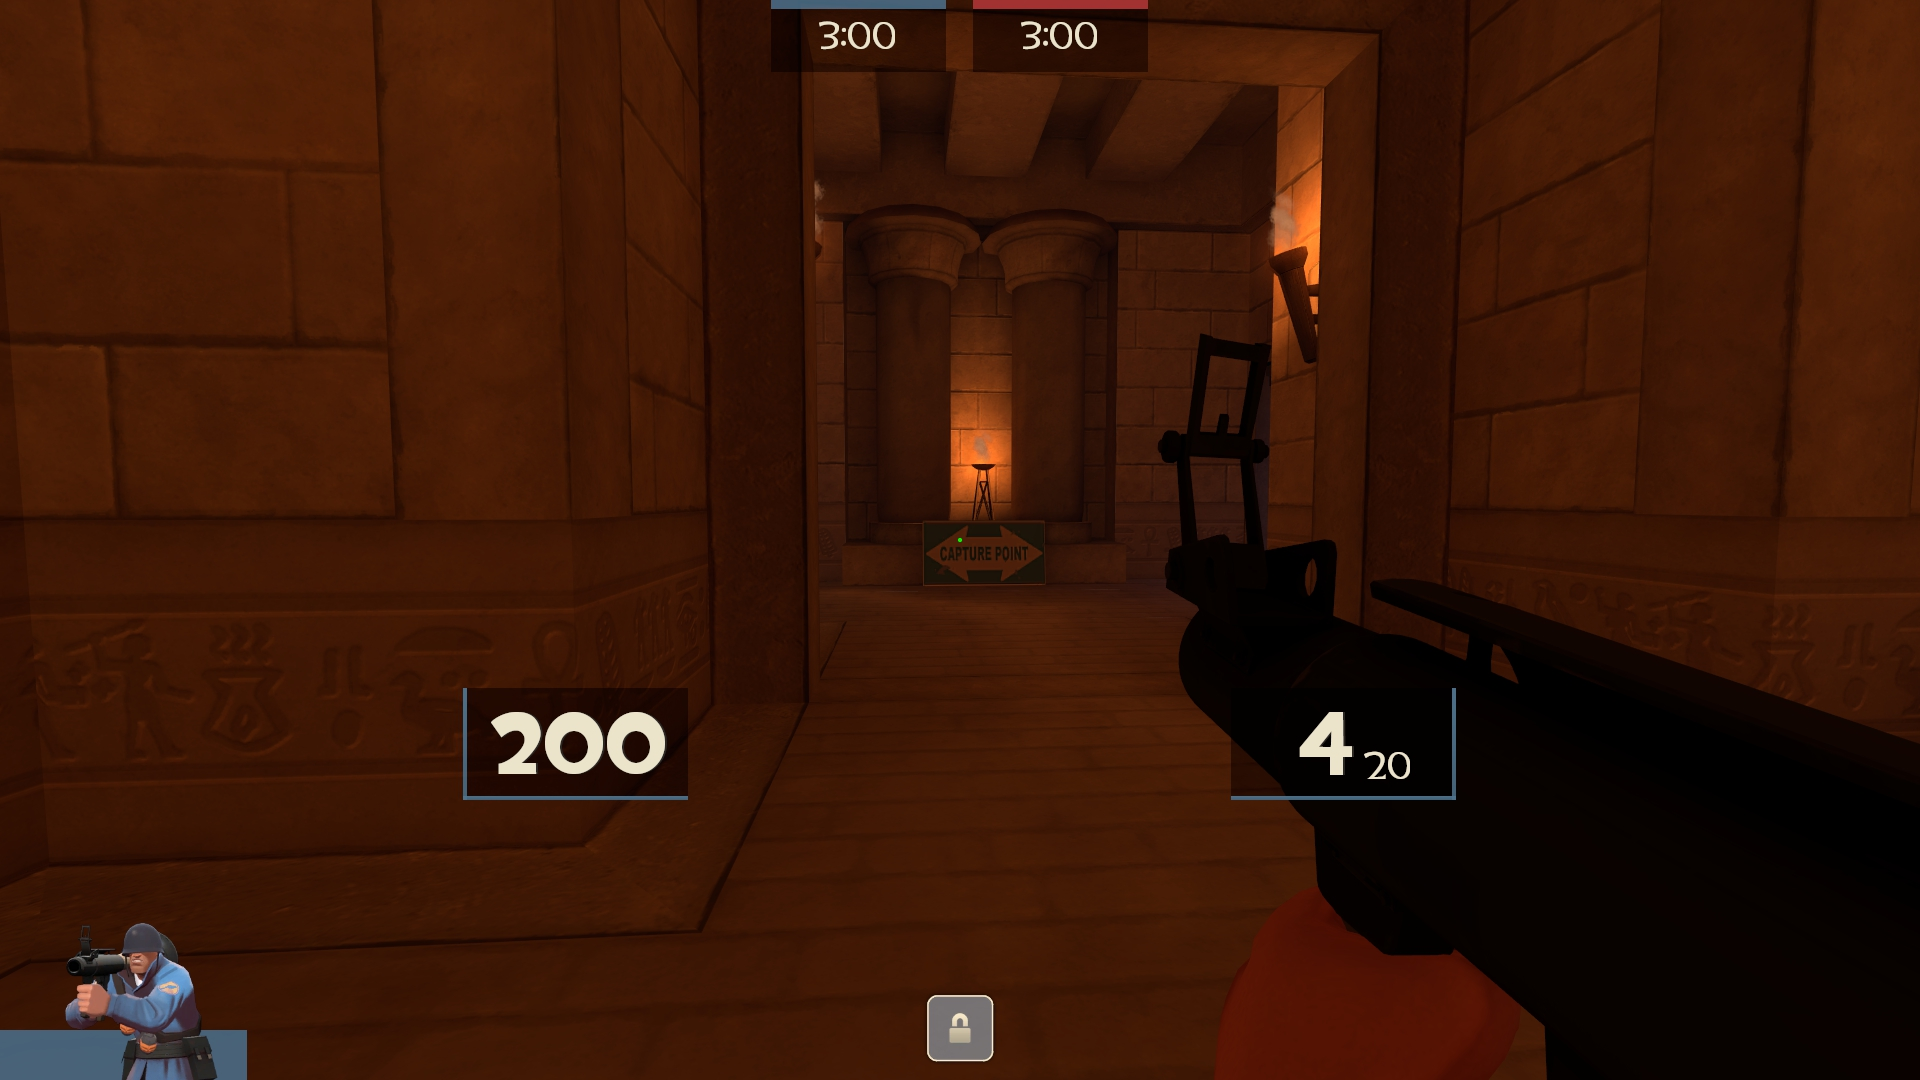 tf2 matchmaking update hud